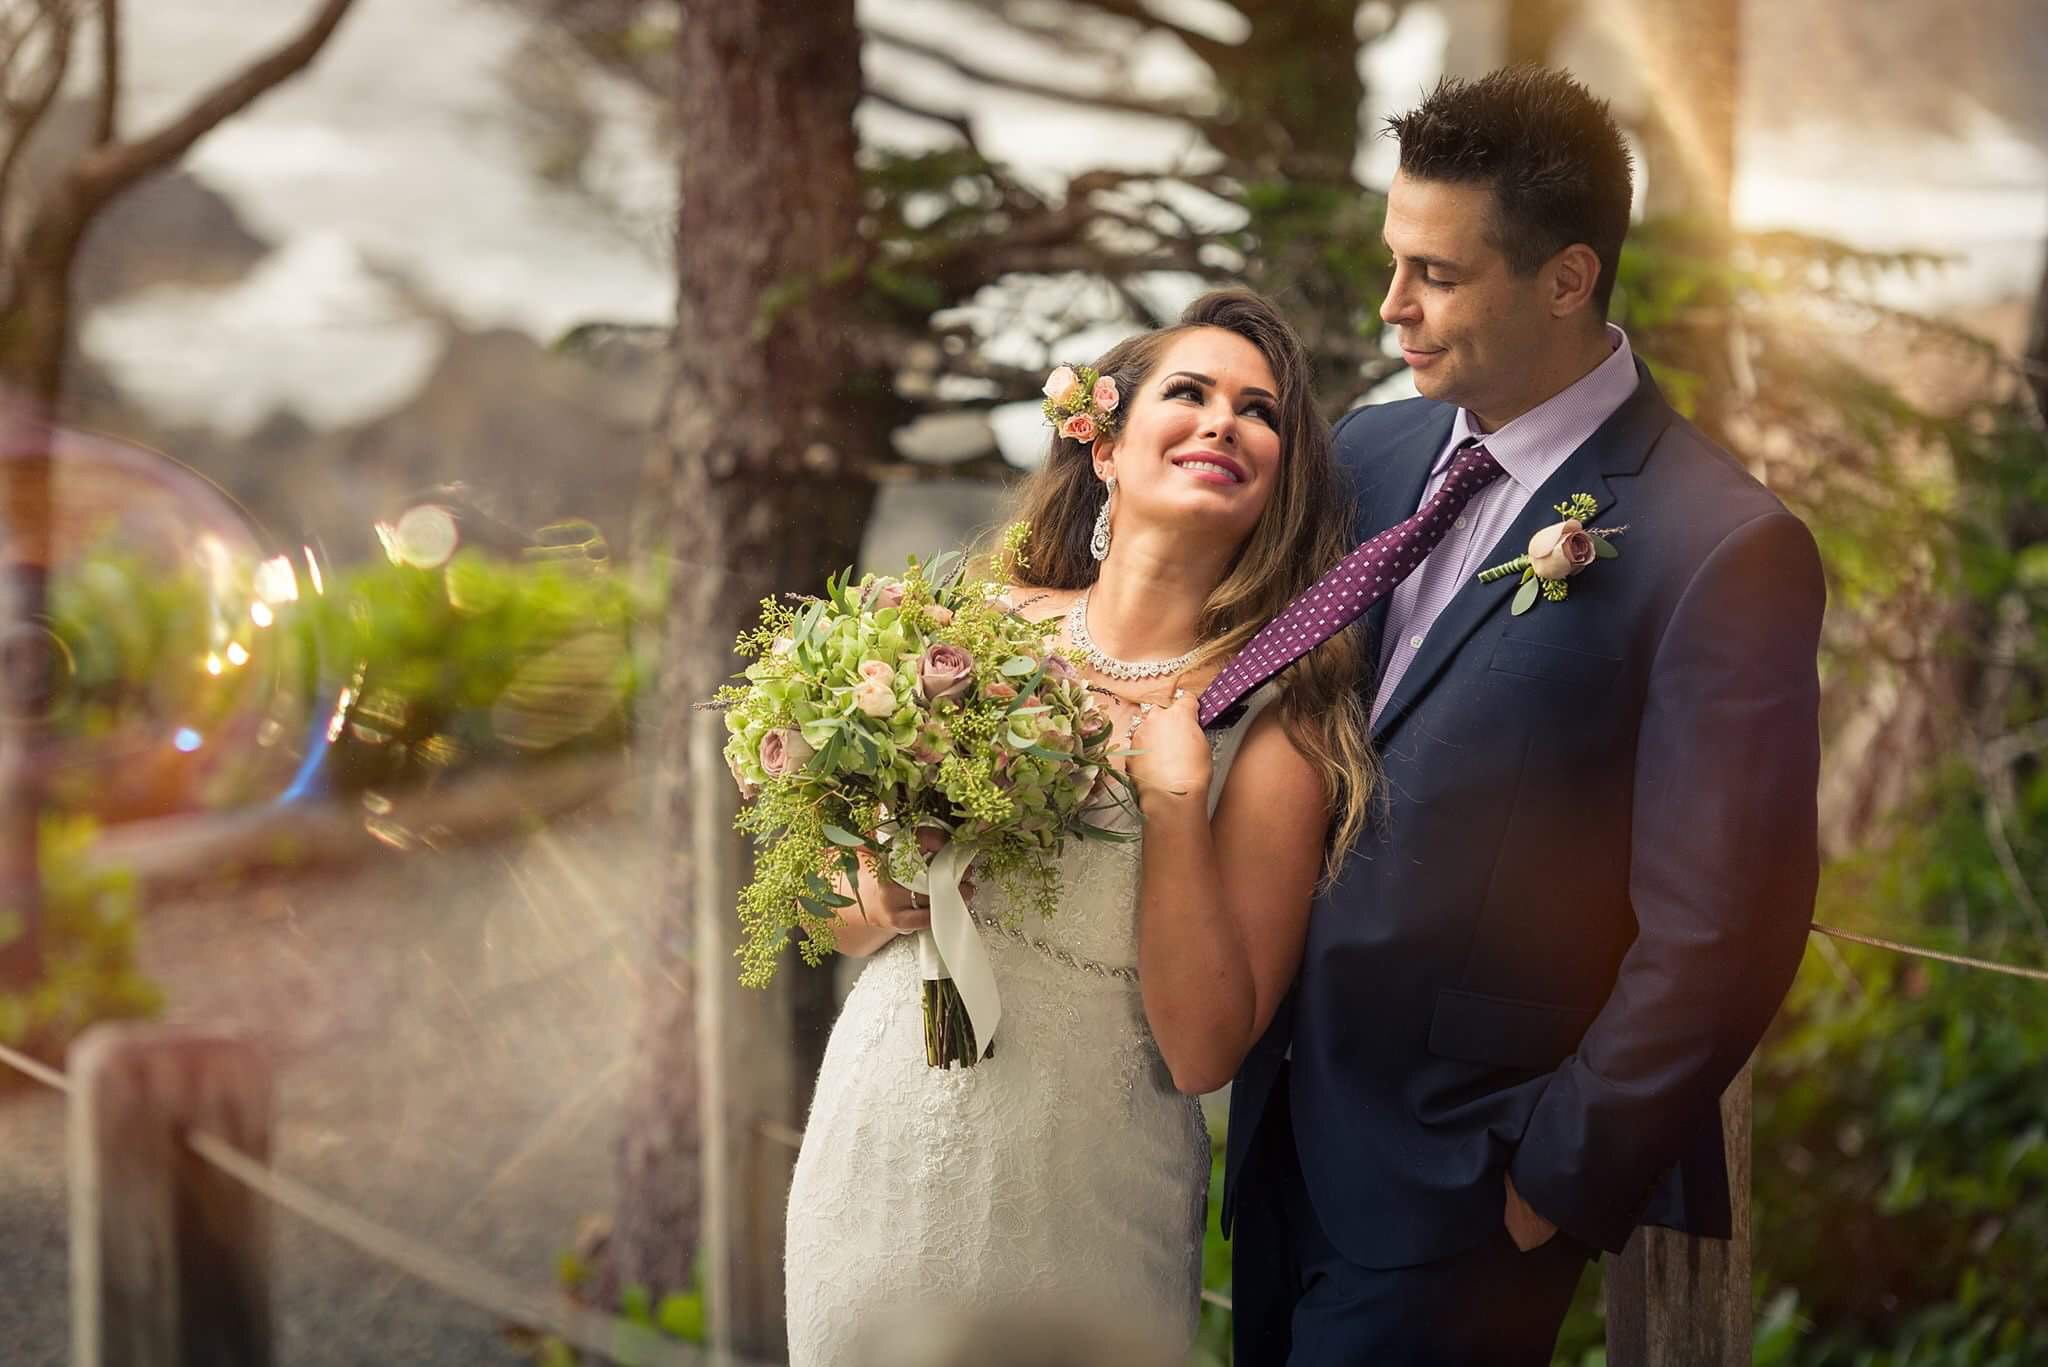 Dunja and Paul Wed at Sophisticated Black Rock West Coast Weddings Magazine